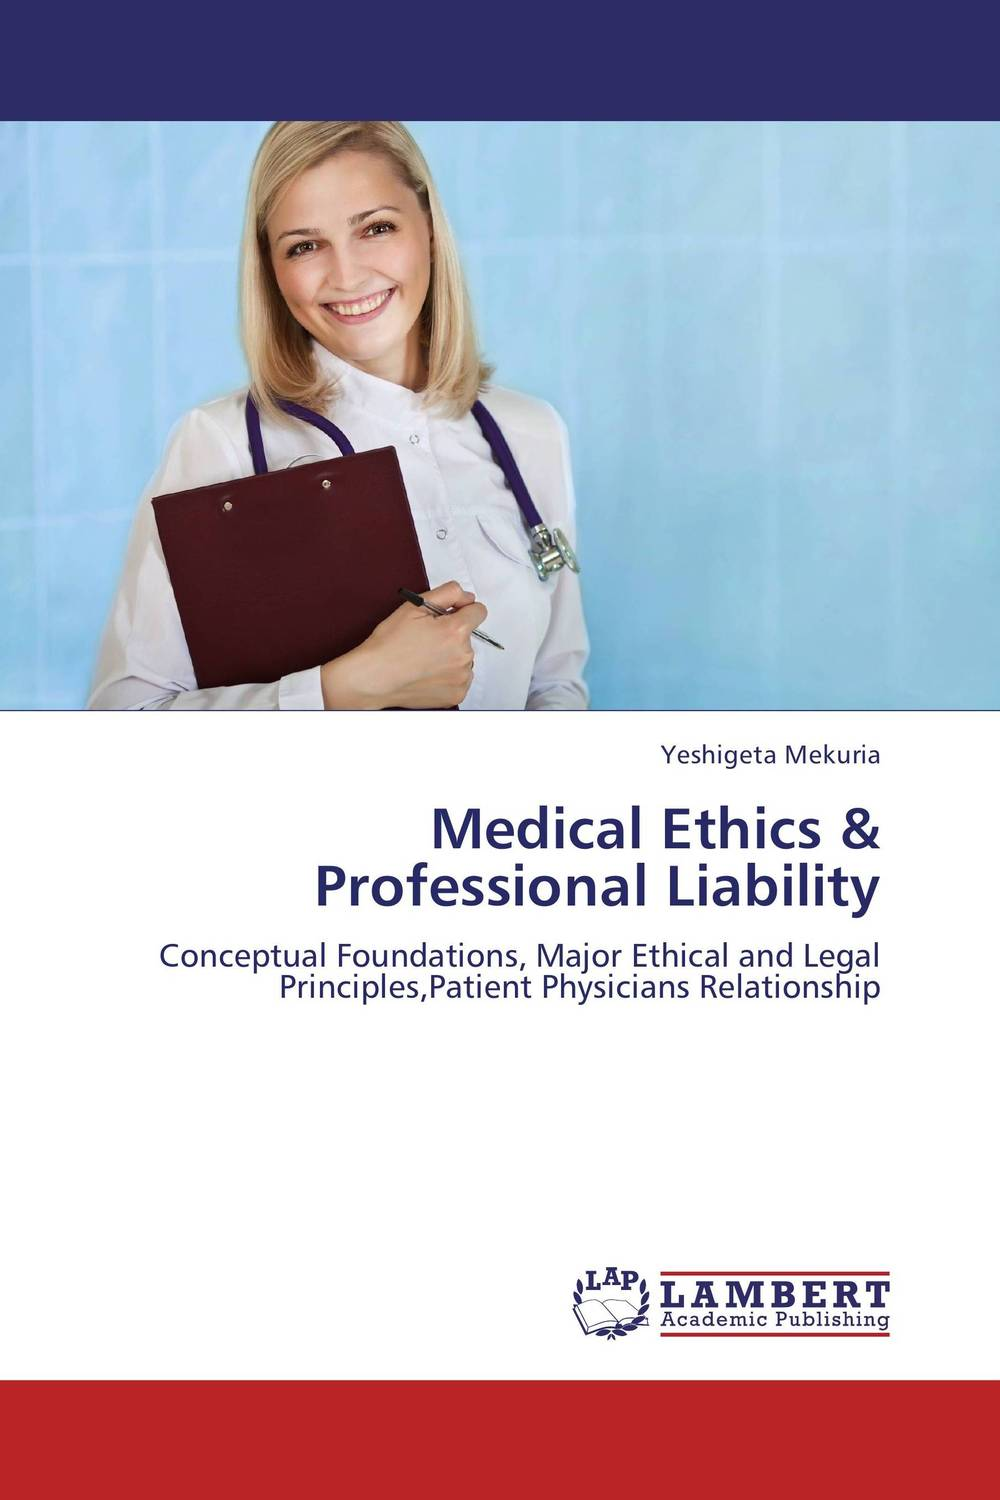 Medical Ethics & Professional Liability uncertain causation in medical liability